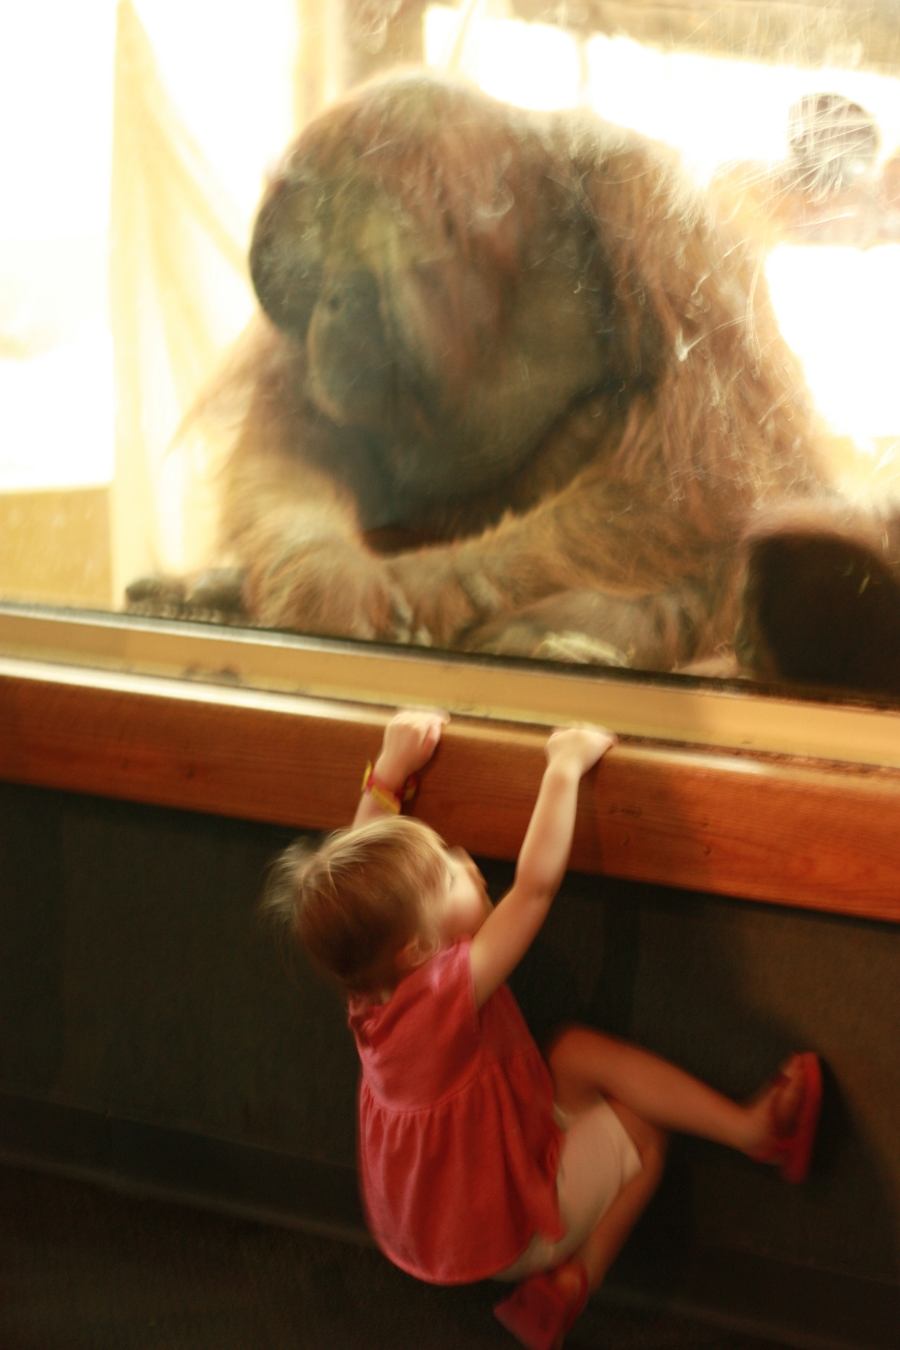 Which monkey was watching which?